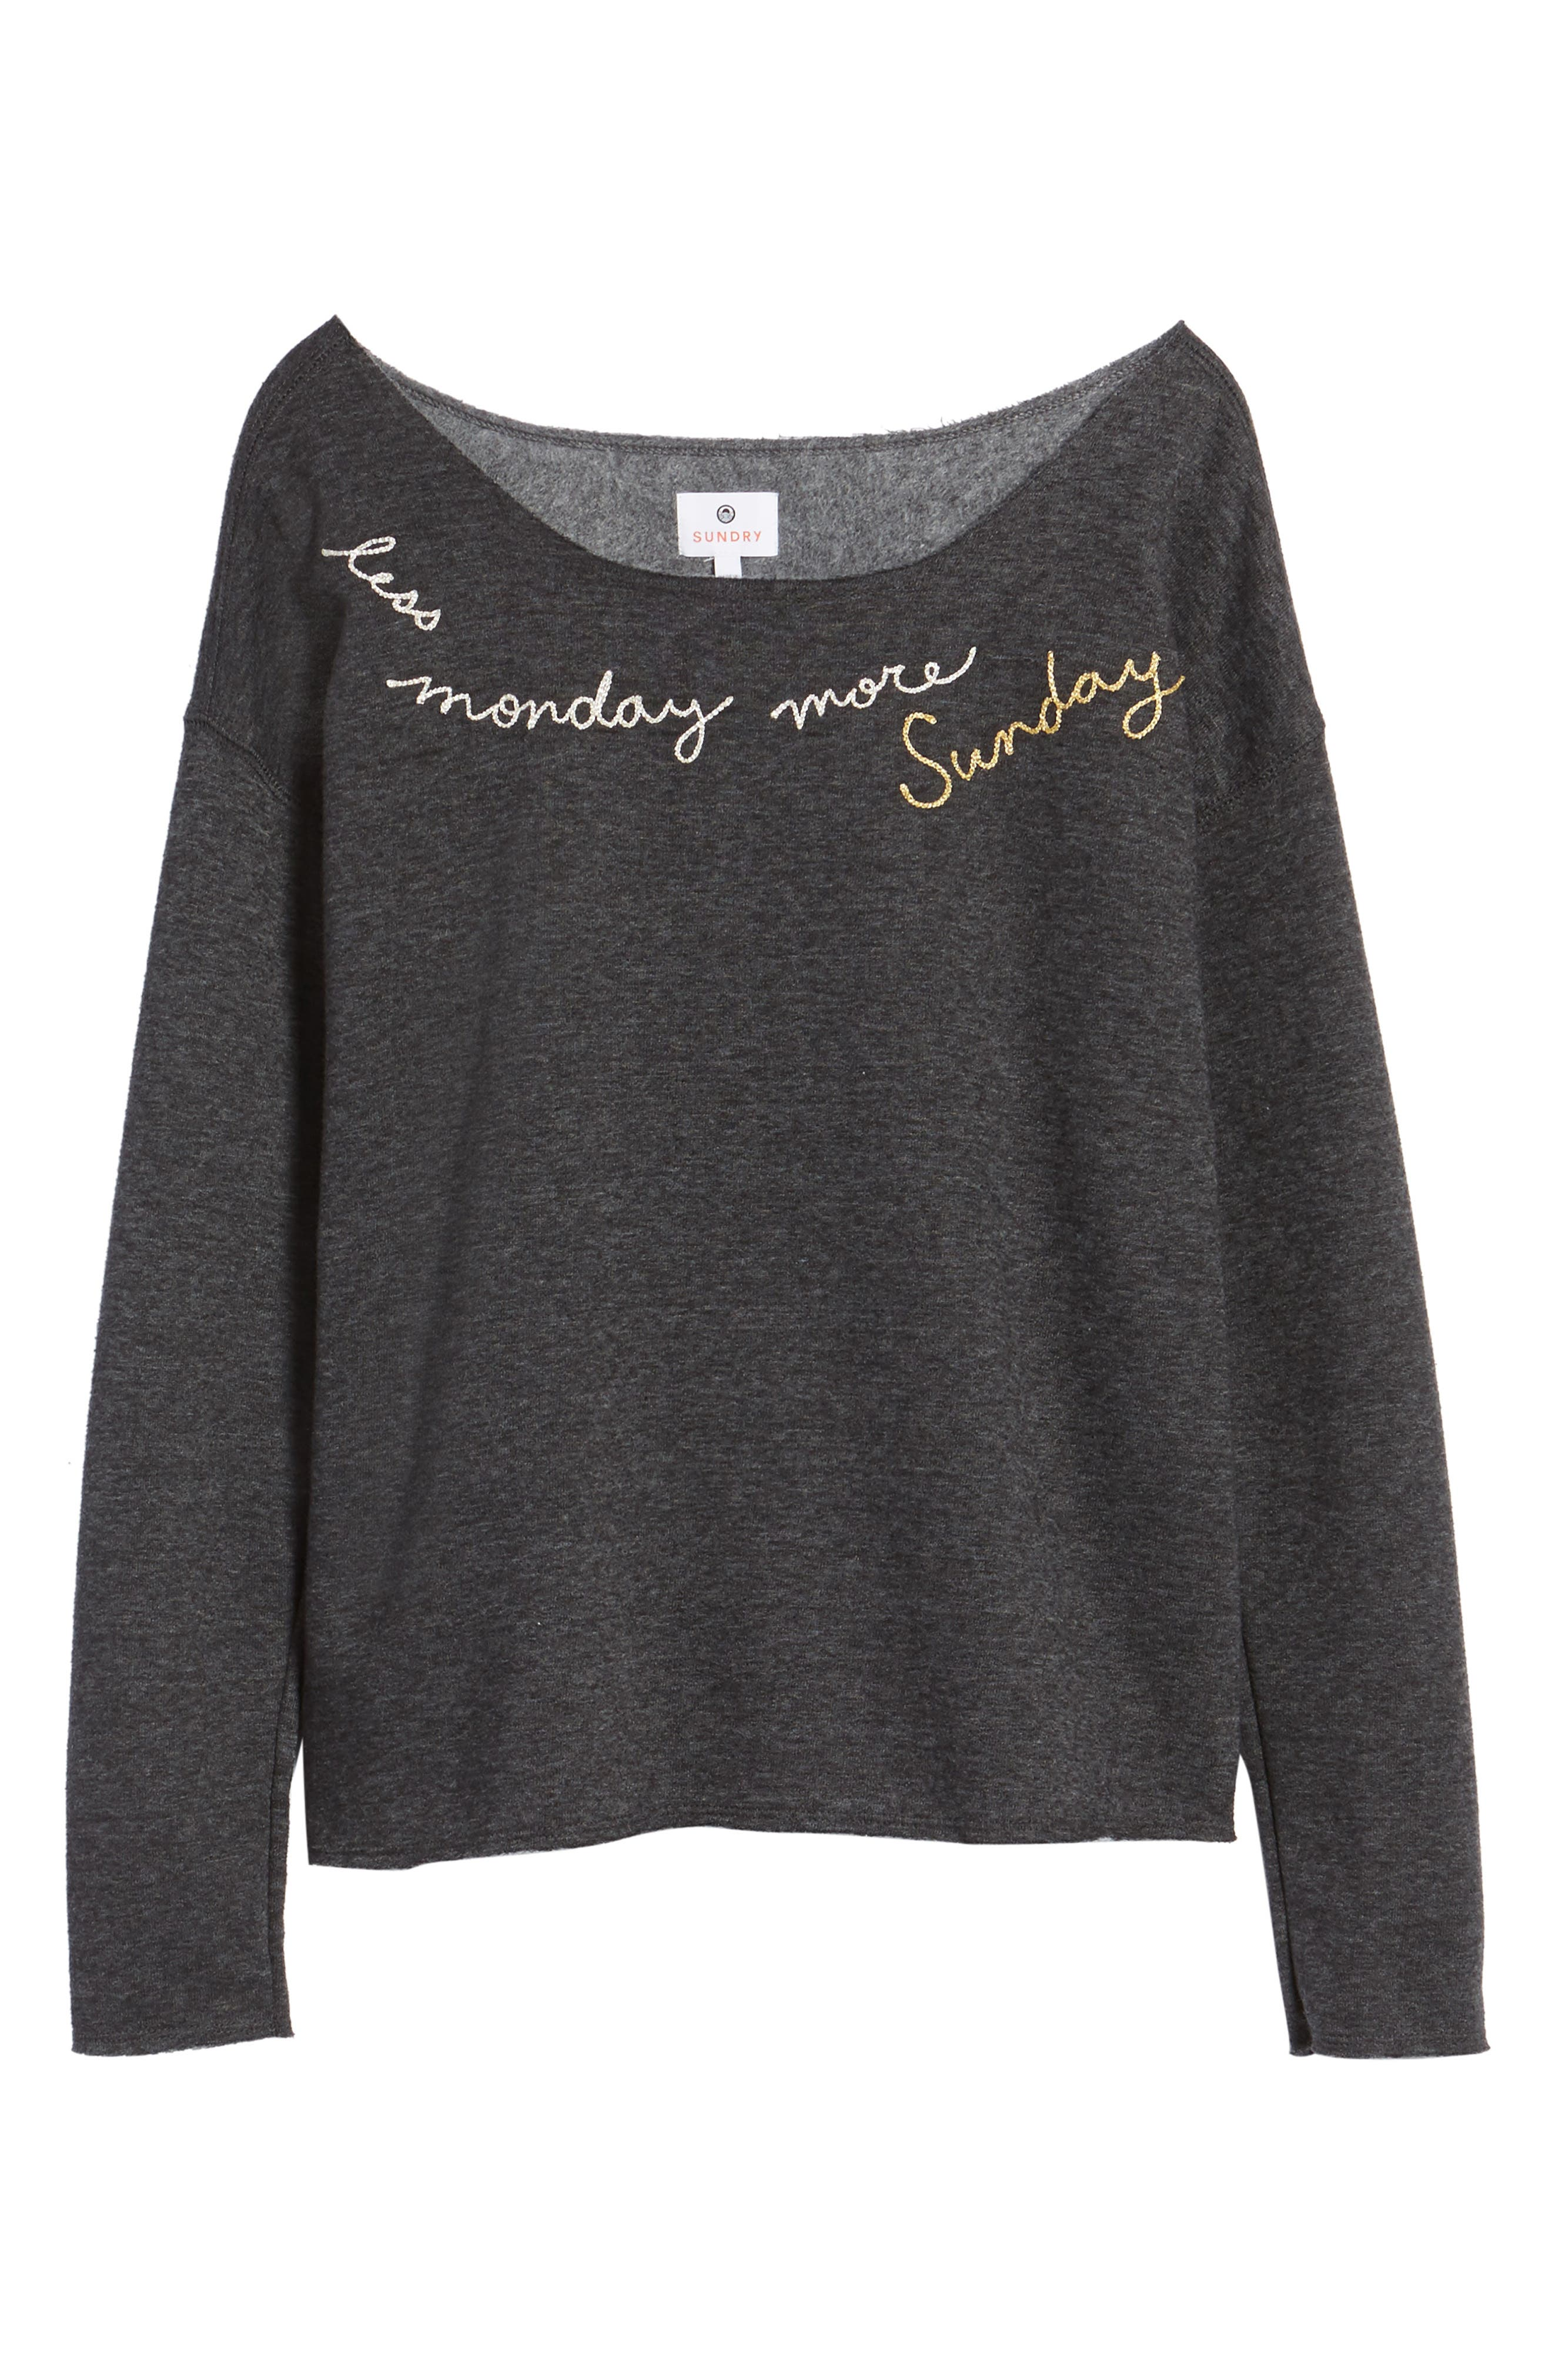 Less Monday More Sunday Sweatshirt,                             Alternate thumbnail 6, color,                             Charcoal